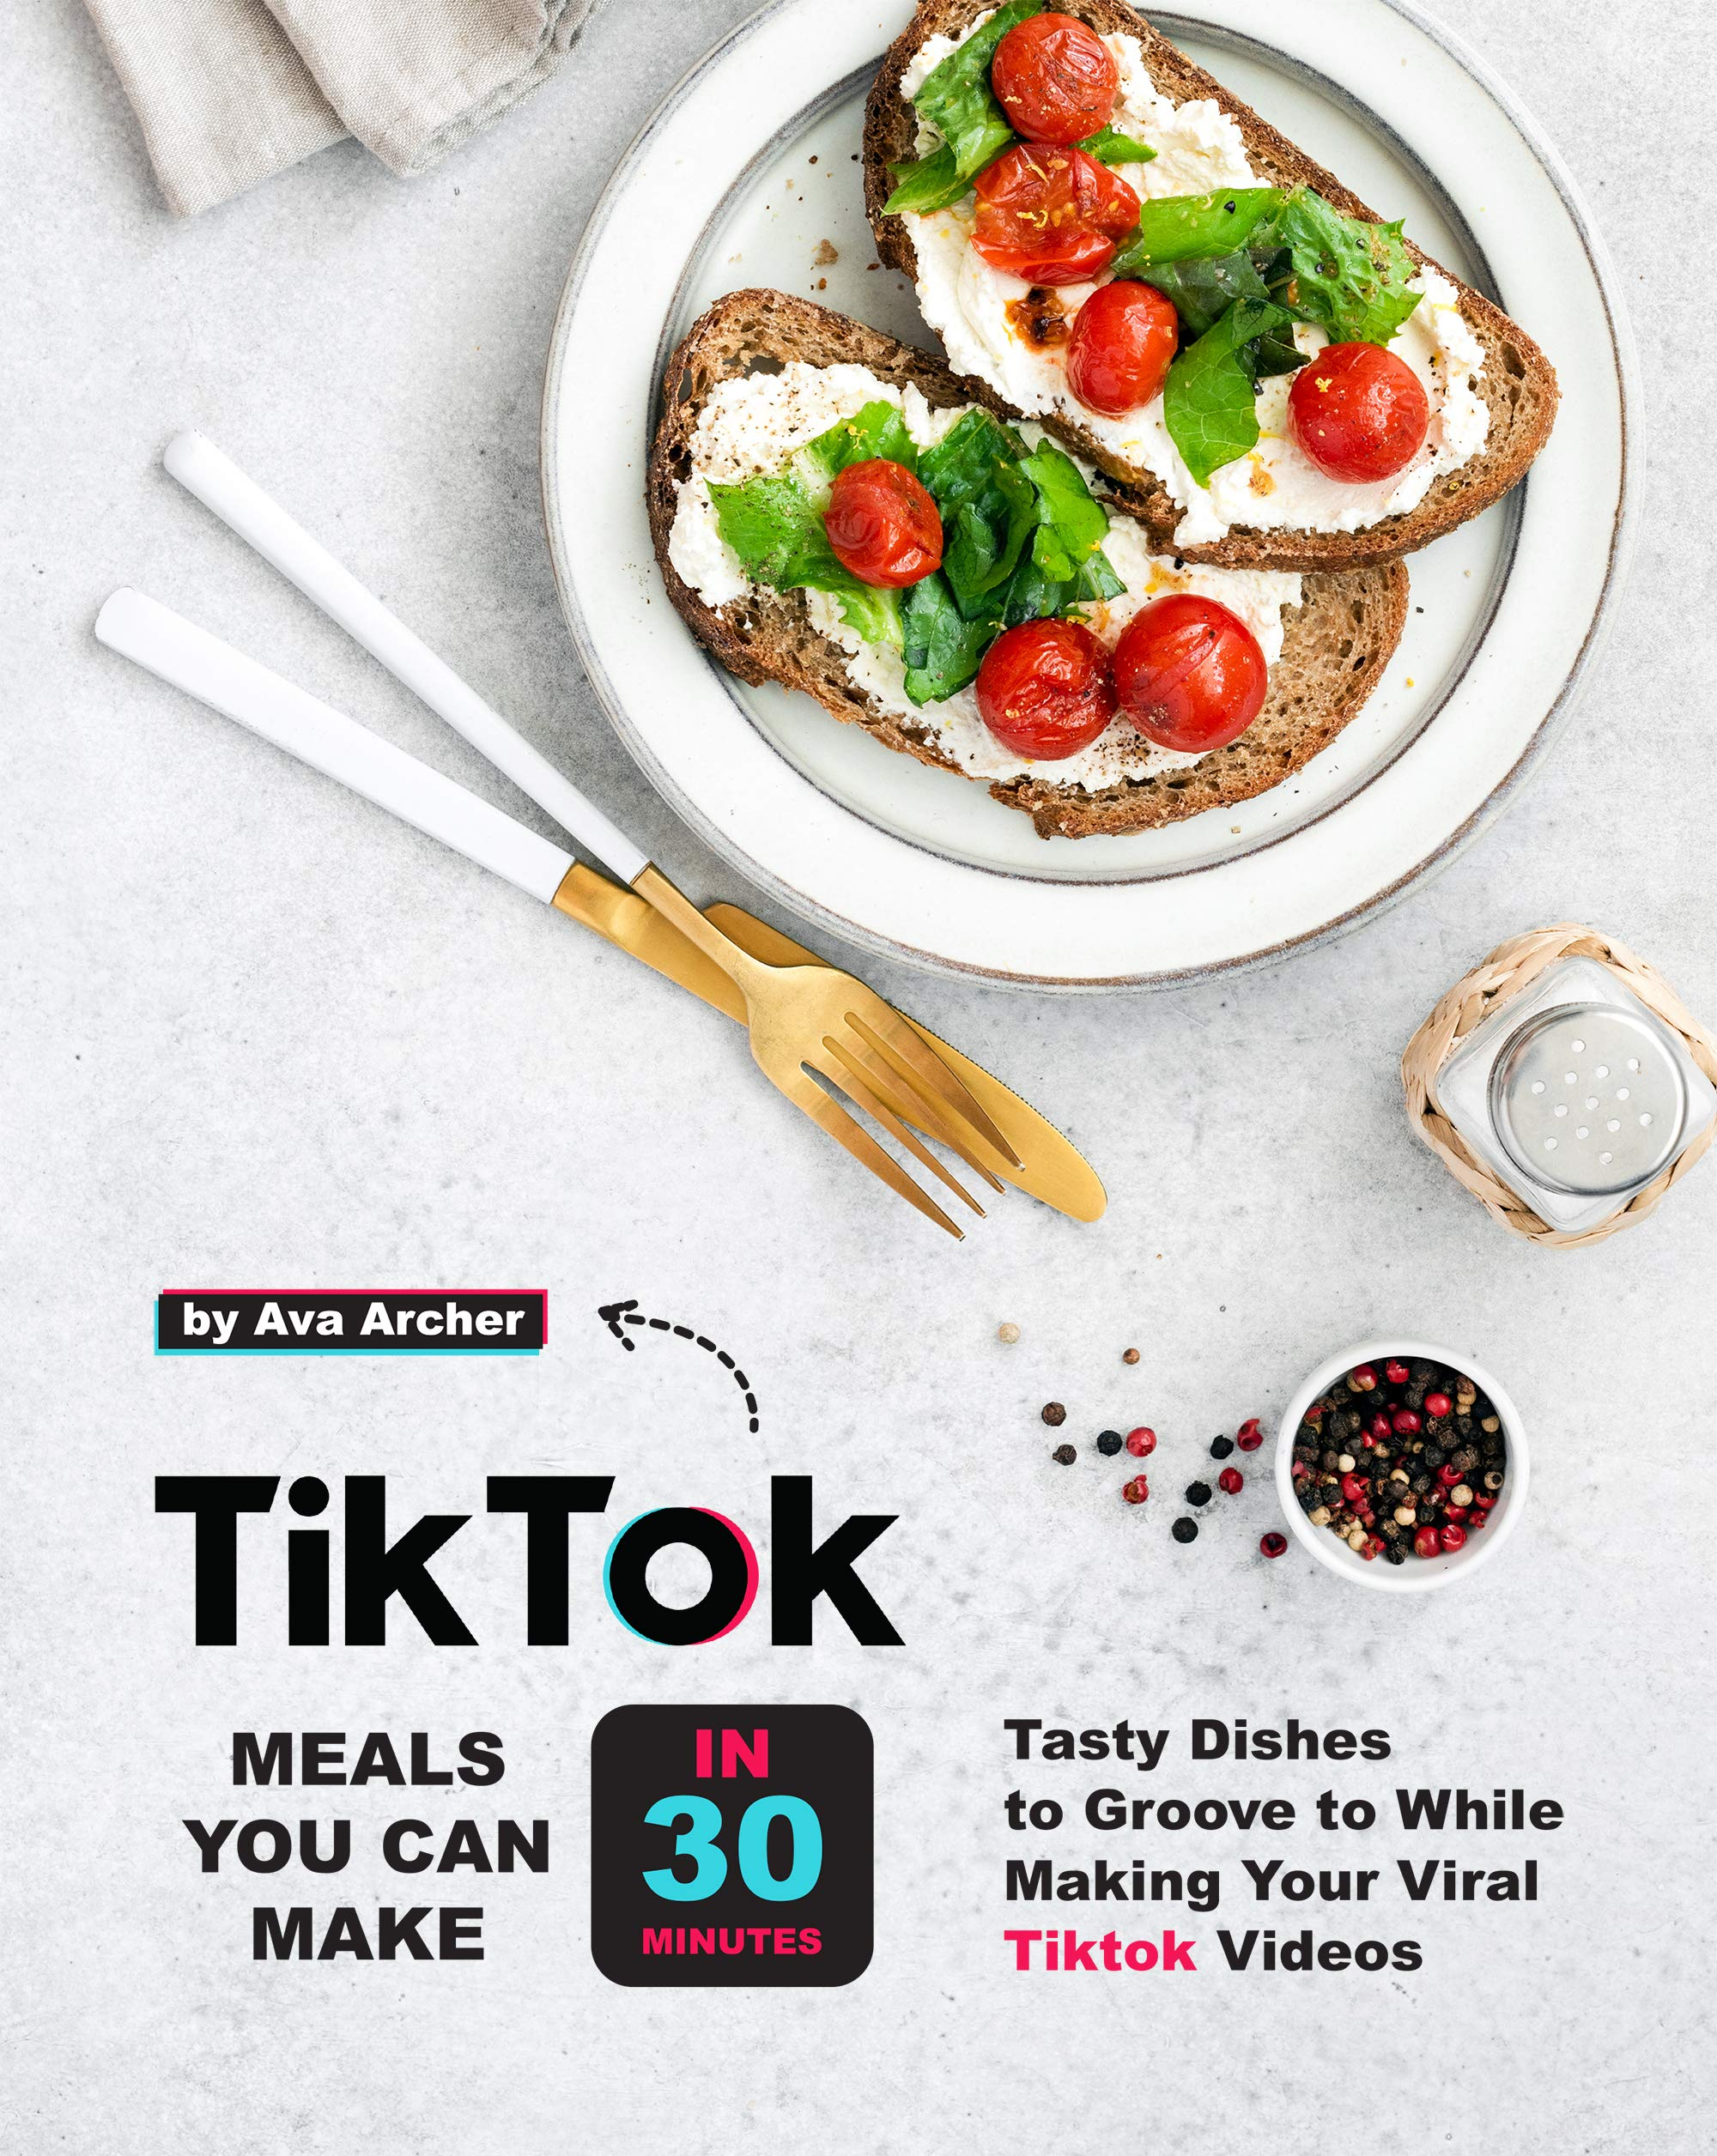 Tiktok Meals You Can Make In 30 Minutes: Tasty Dishes to Groove to While Making Your Viral Tiktok Videos